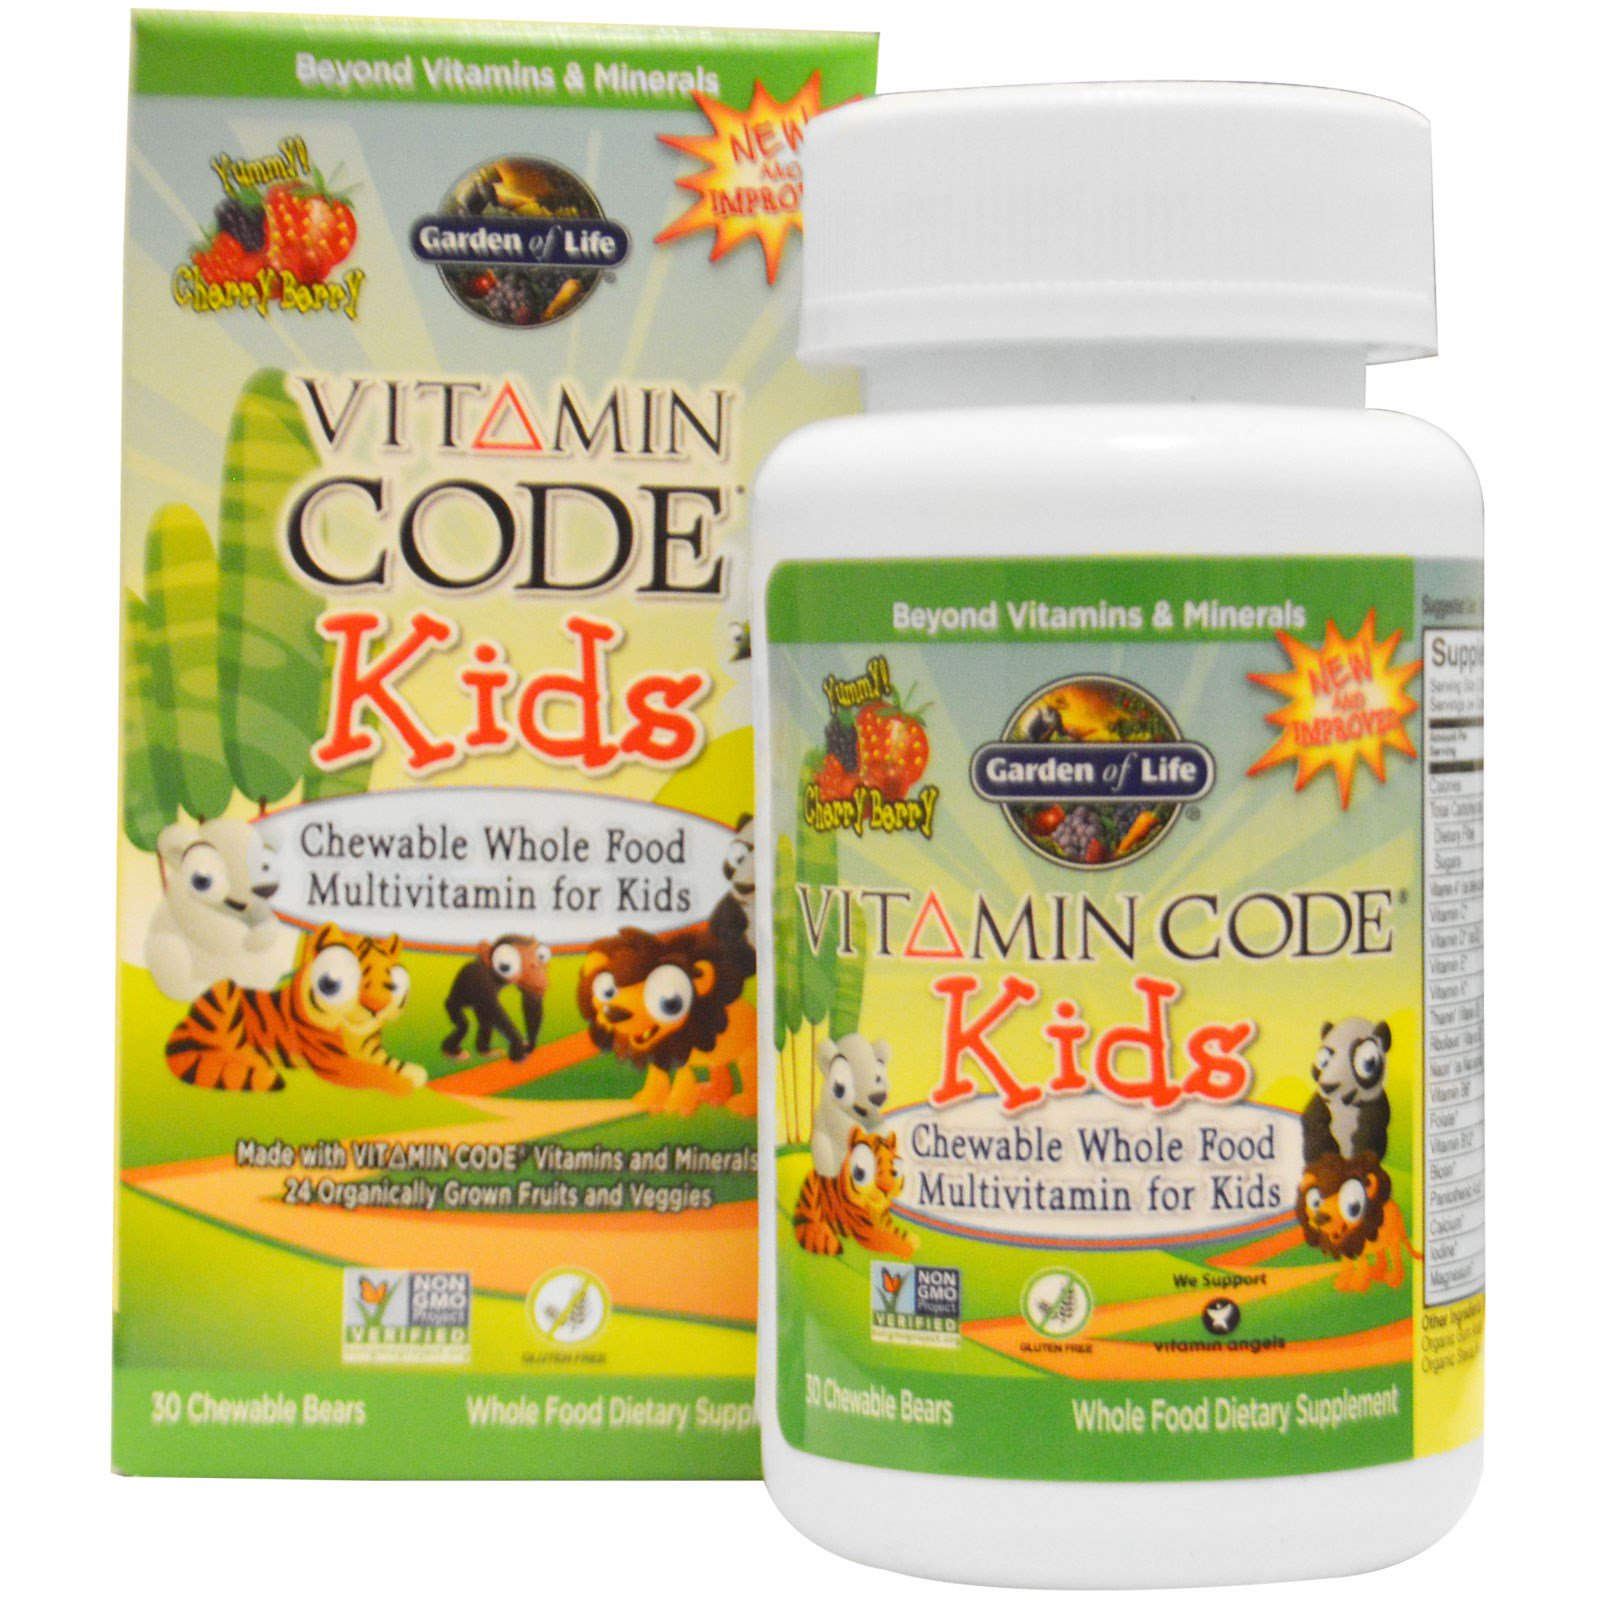 garden of life vitamin code kids chewable whole food multivitamin for kids - Garden Of Life Multivitamin